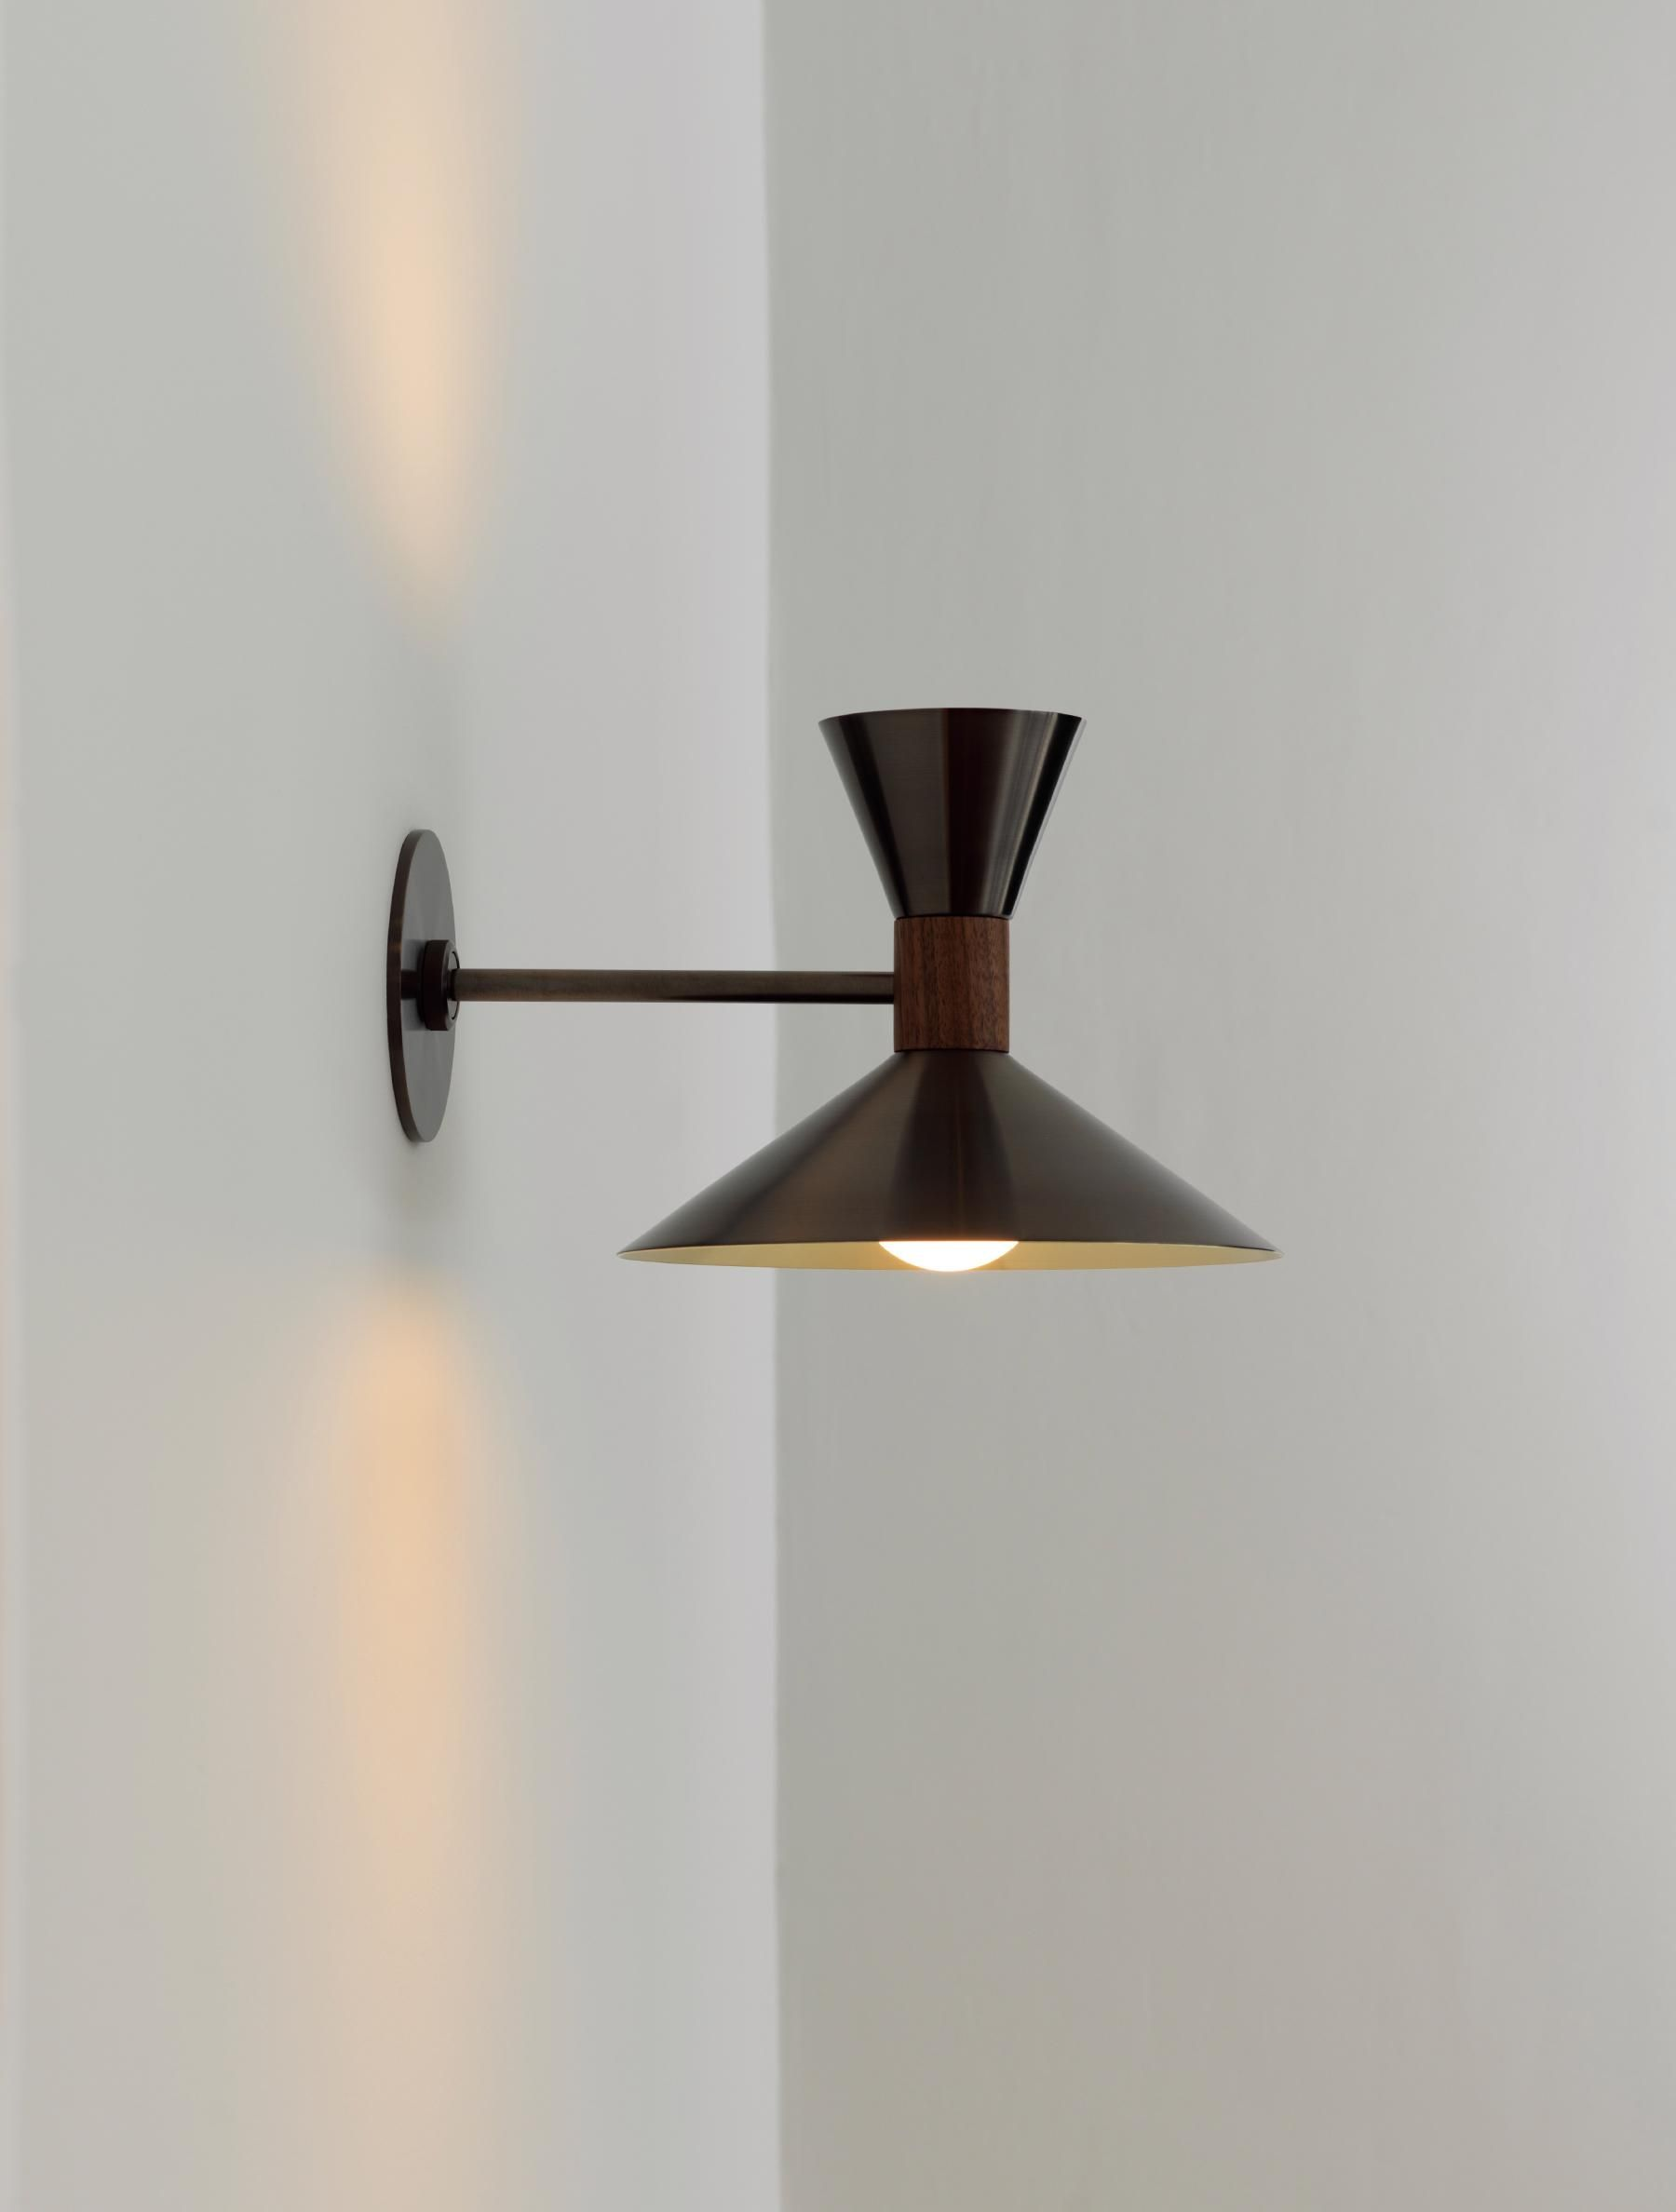 Dual Cone Sconce In 2021 Sconces Light Sconce Lighting